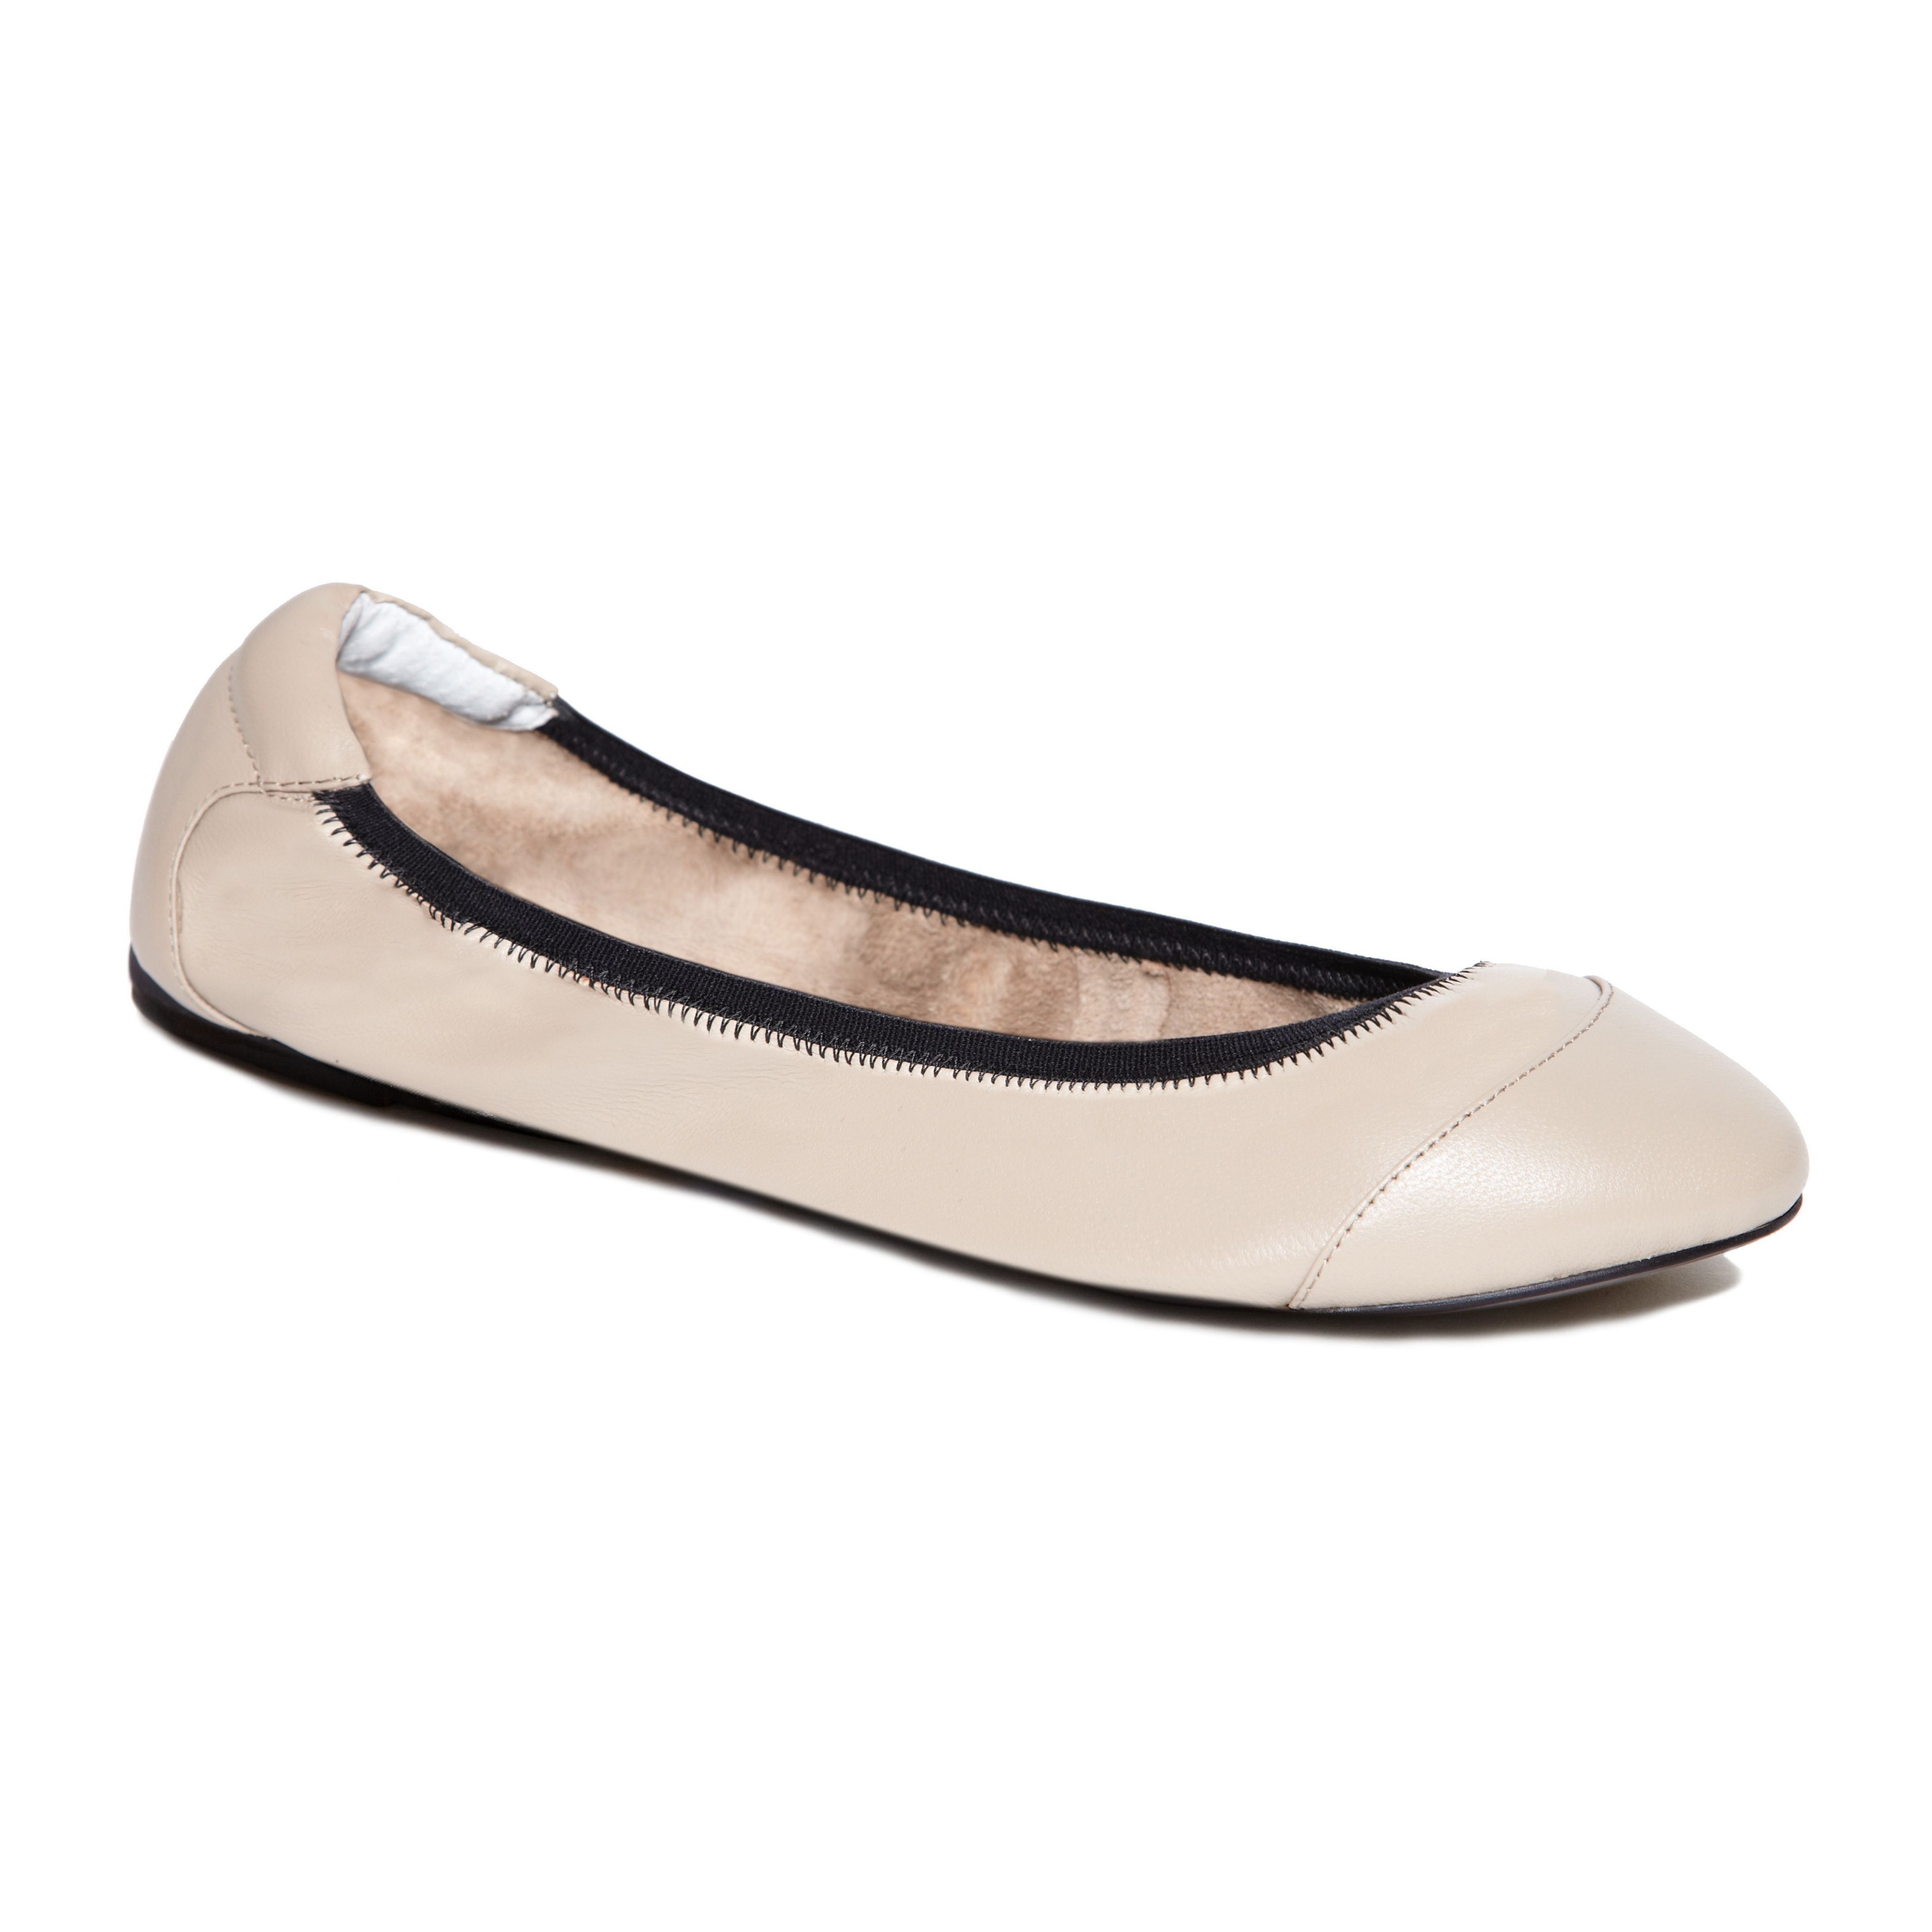 Brixton nude leather foldable ballerina